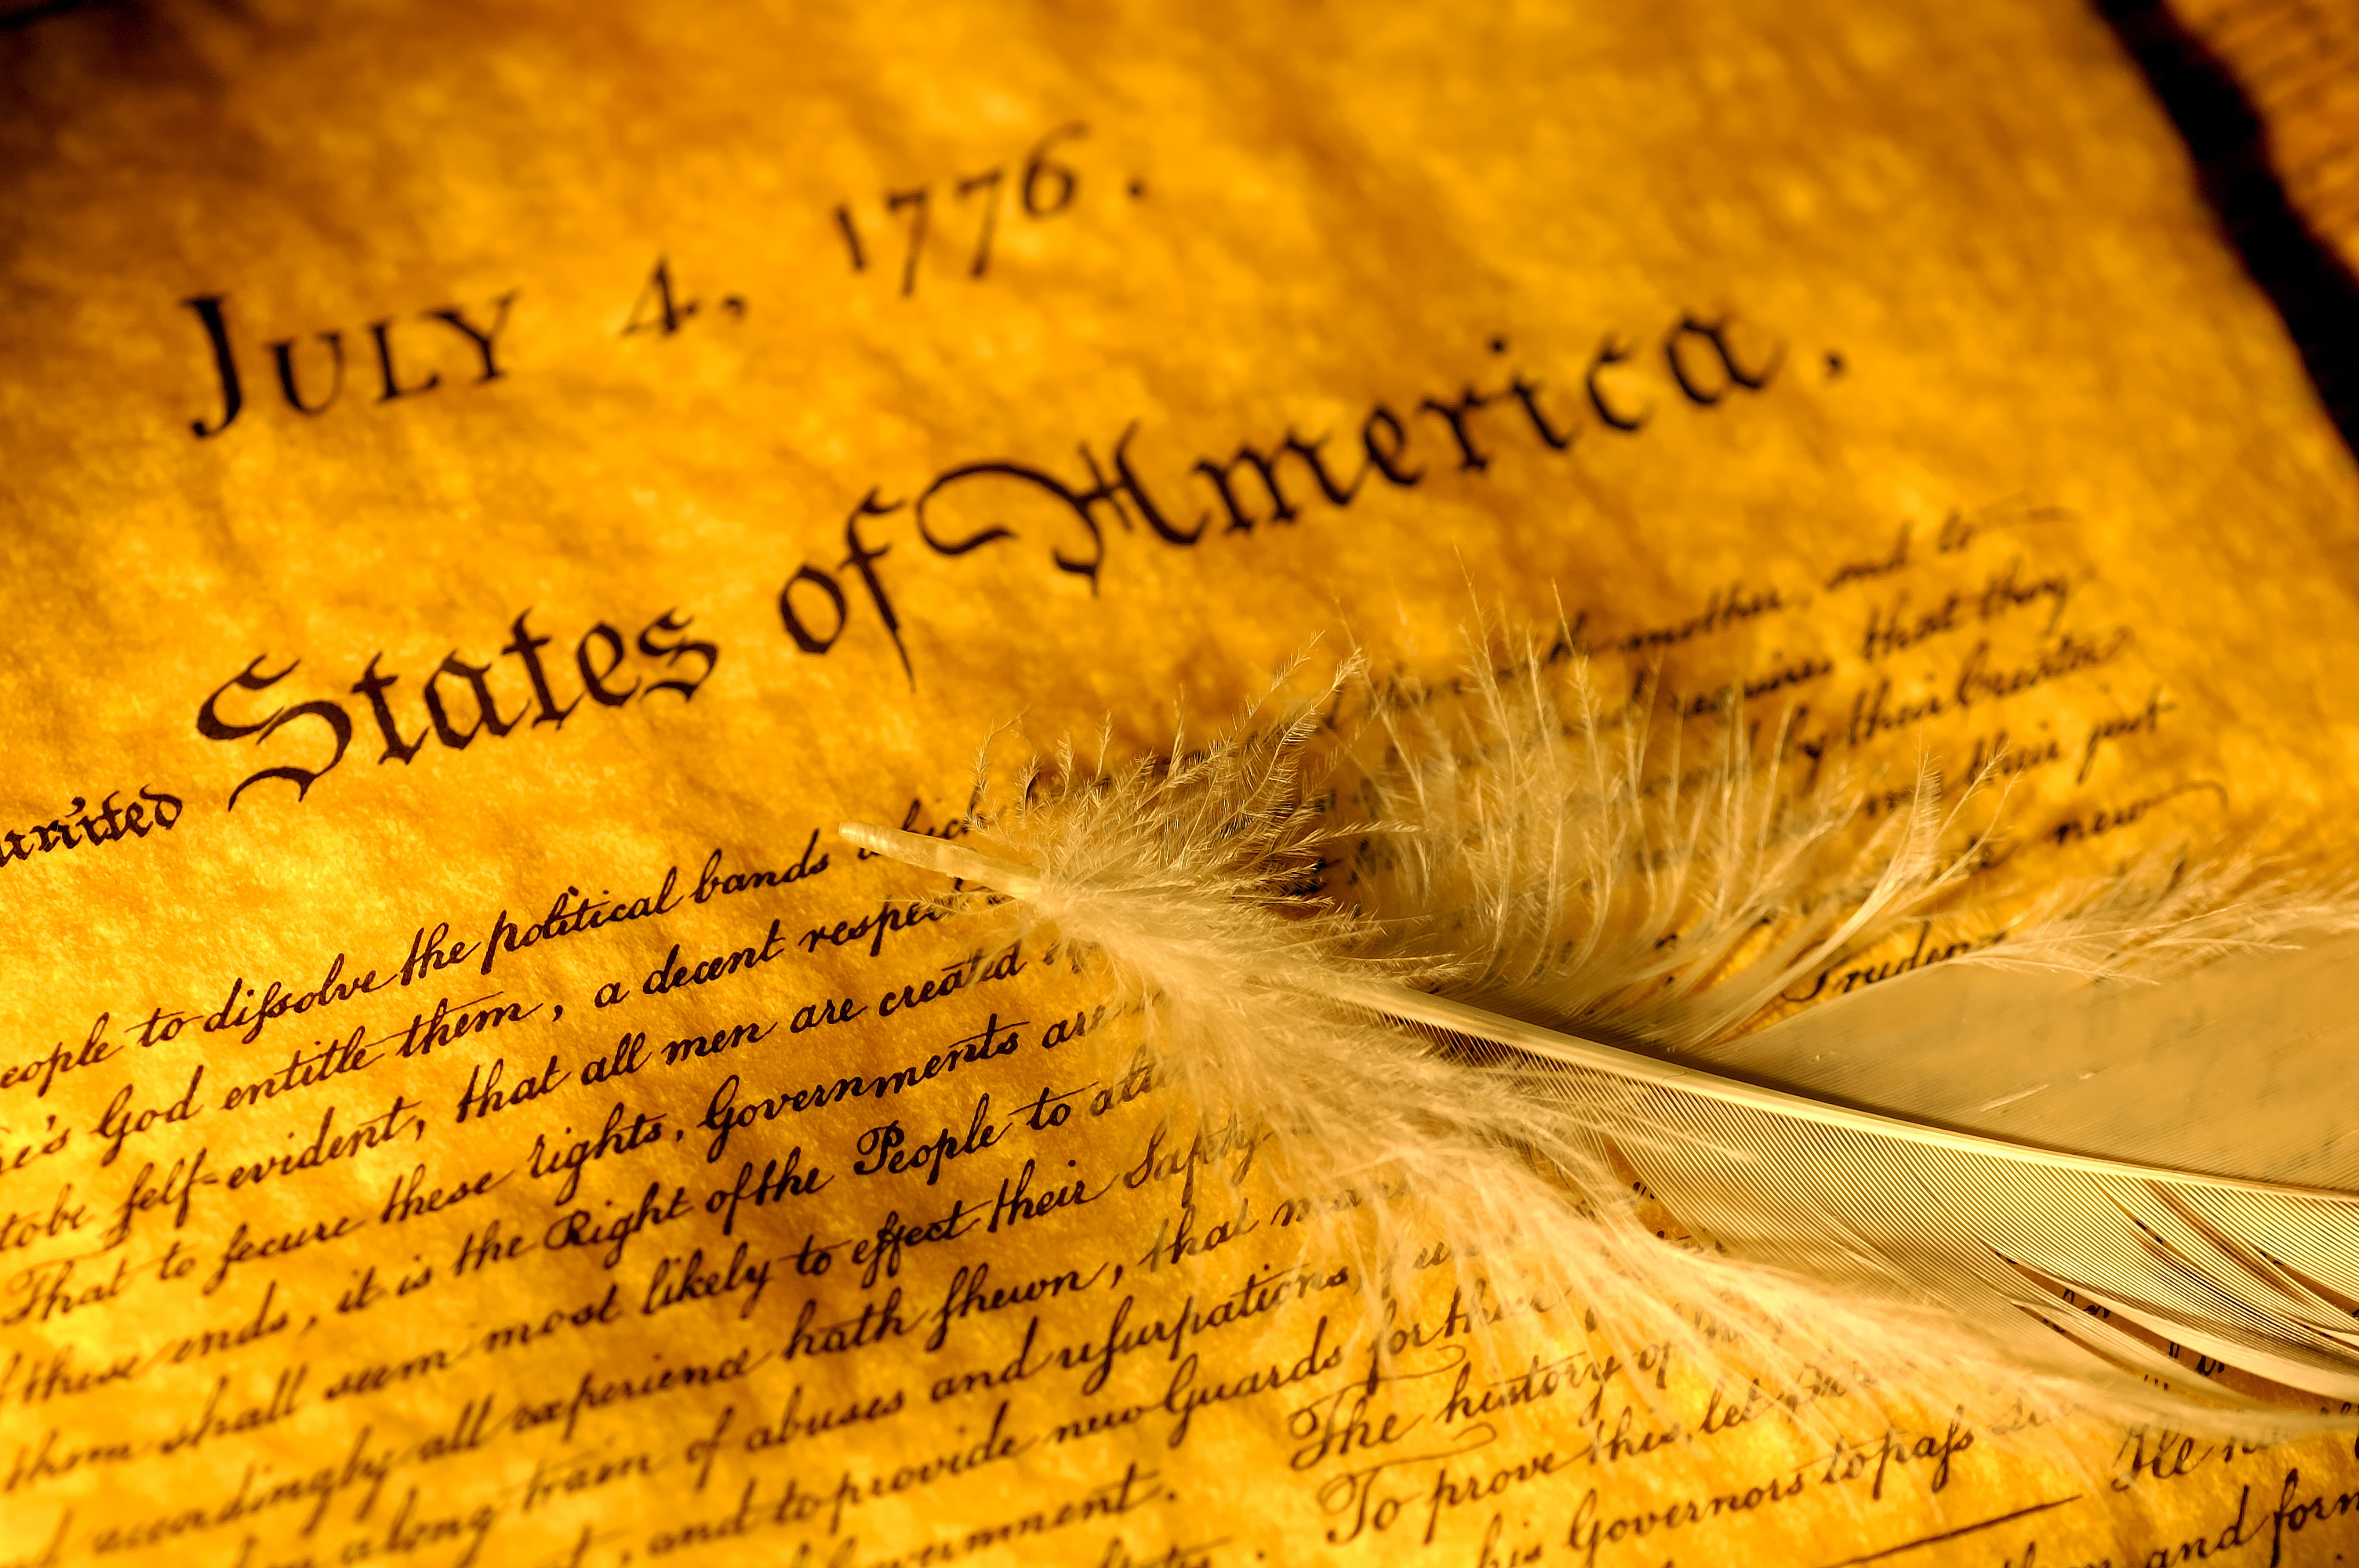 the key aspects that changes the american lives in the declaration of independence The english bill of rights and the american declaration of independence the 1776 american declaration of independence states that: all men are created equal and have the right to life, liberty, and the pursuit of happiness these are unalienable.